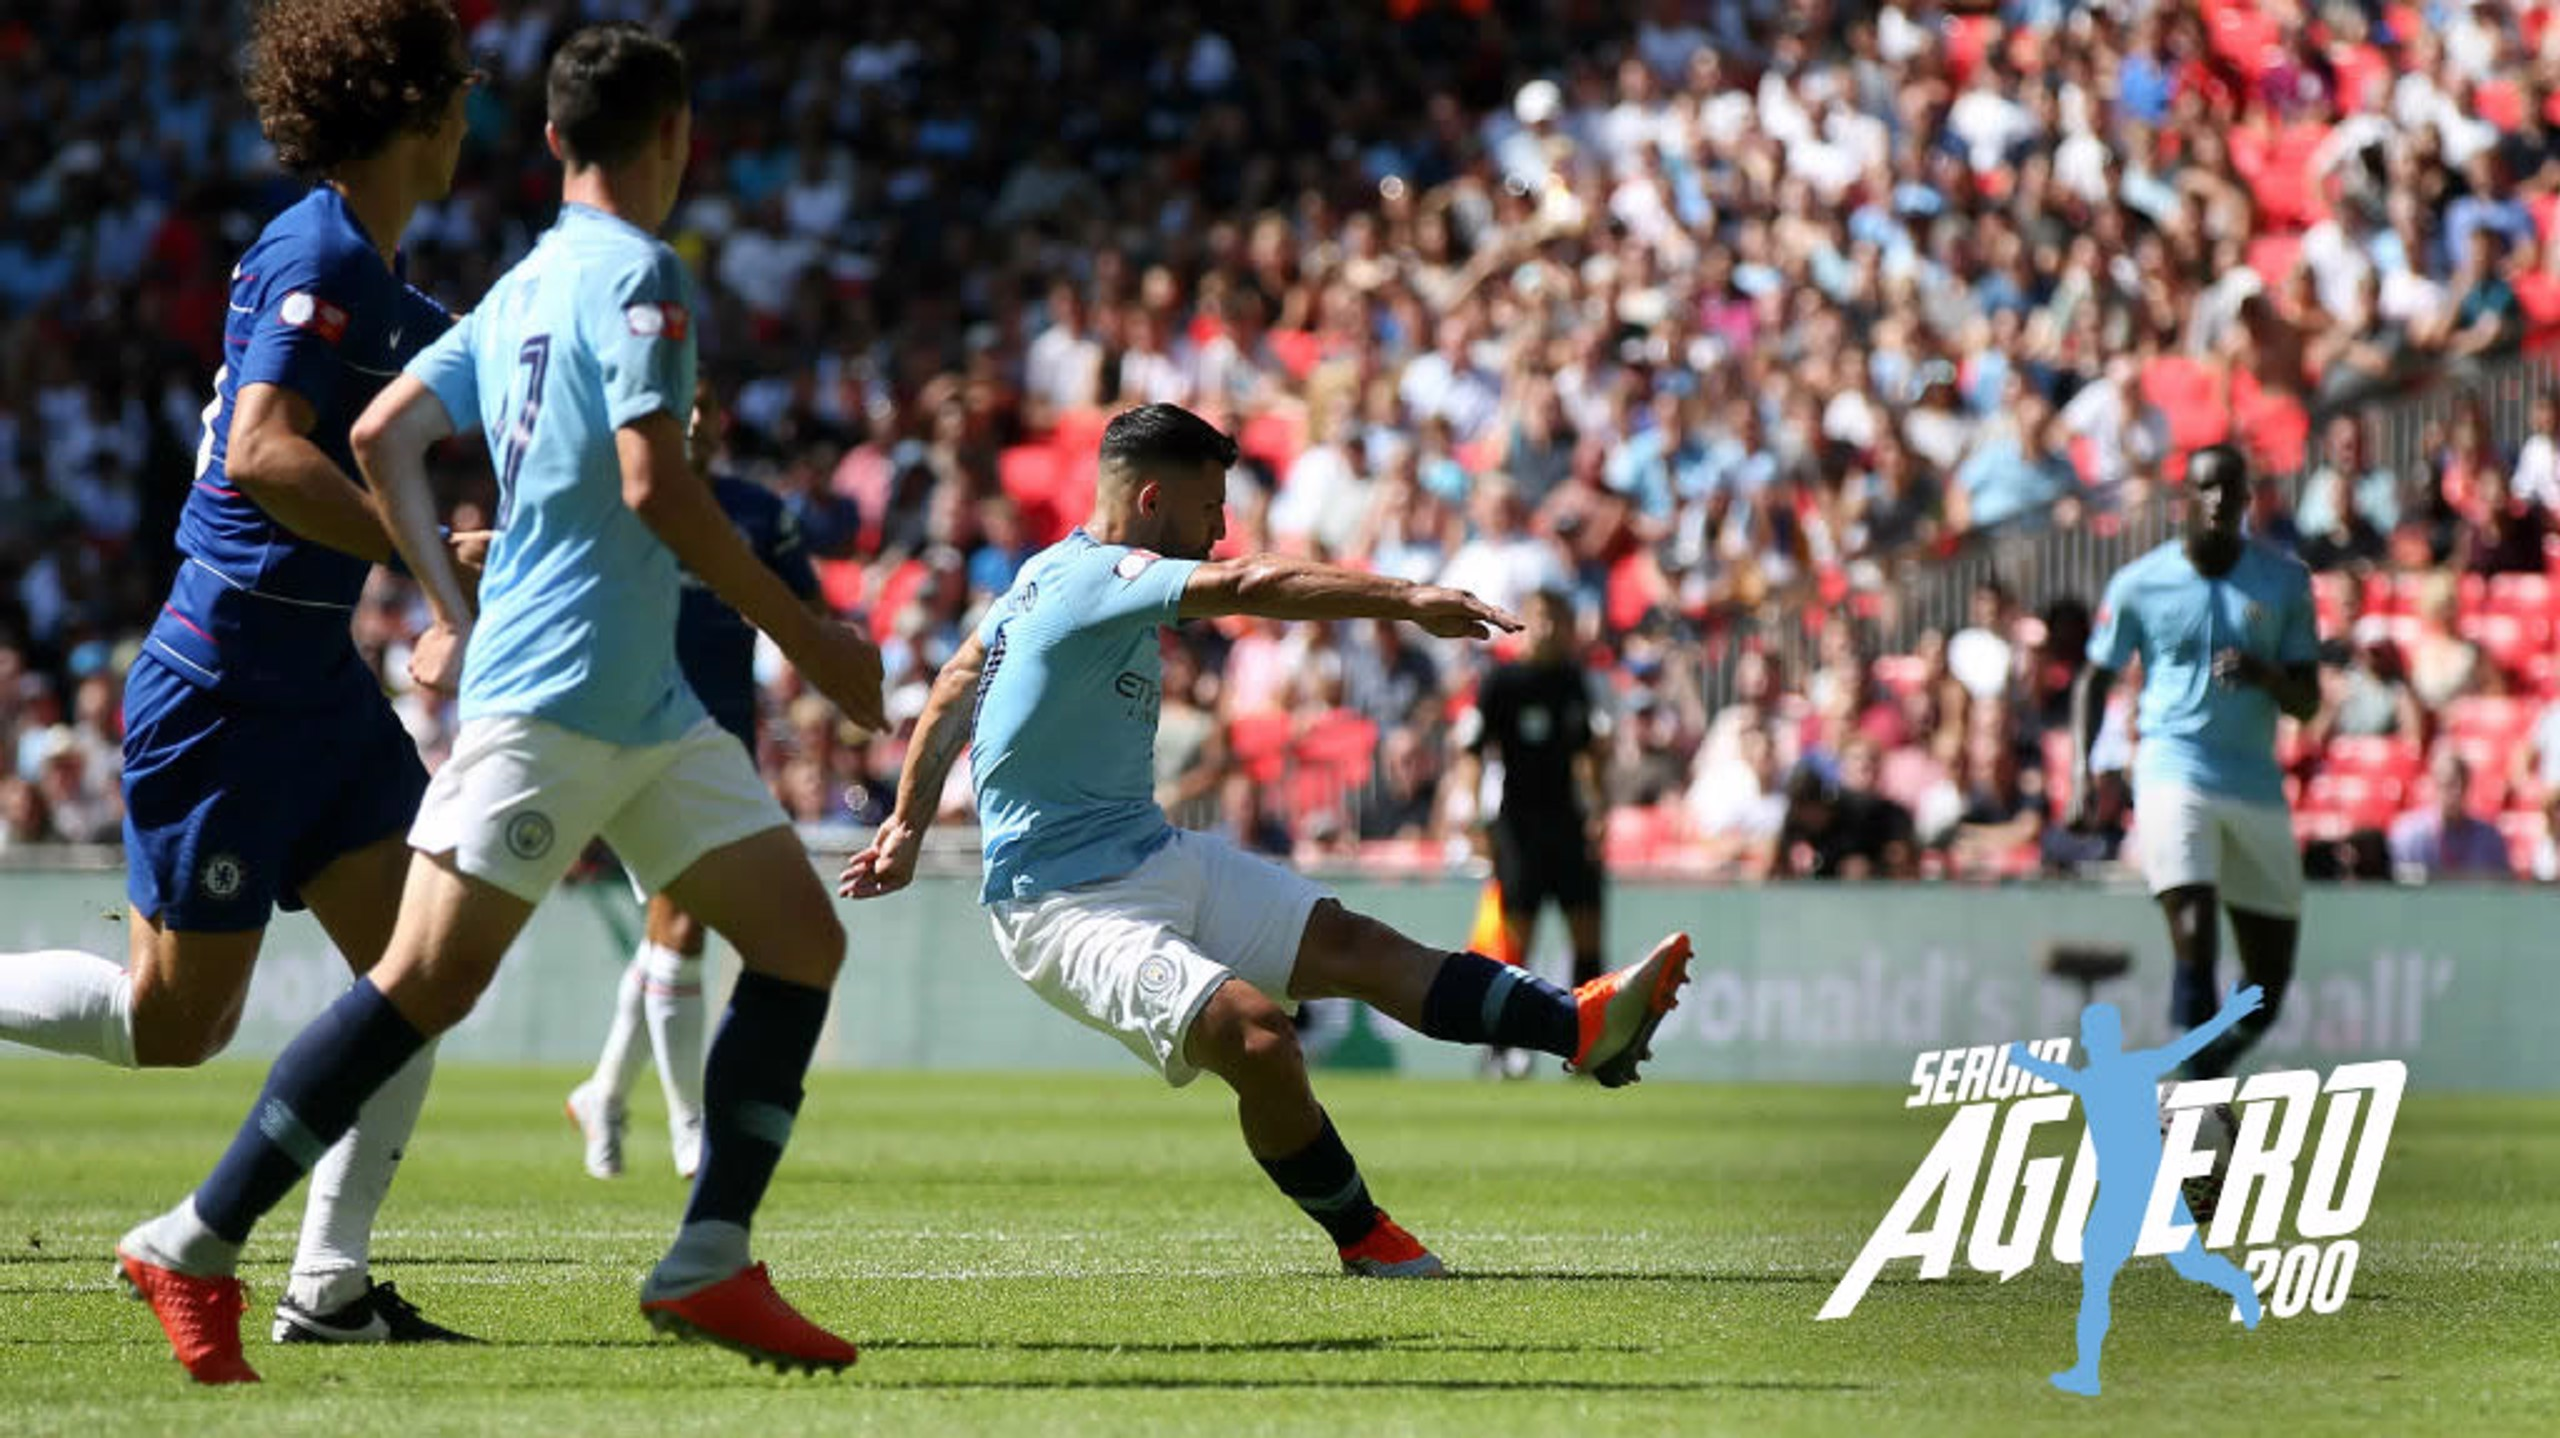 SHARP SHOOTER: Sergio Aguero scores his 200th goal